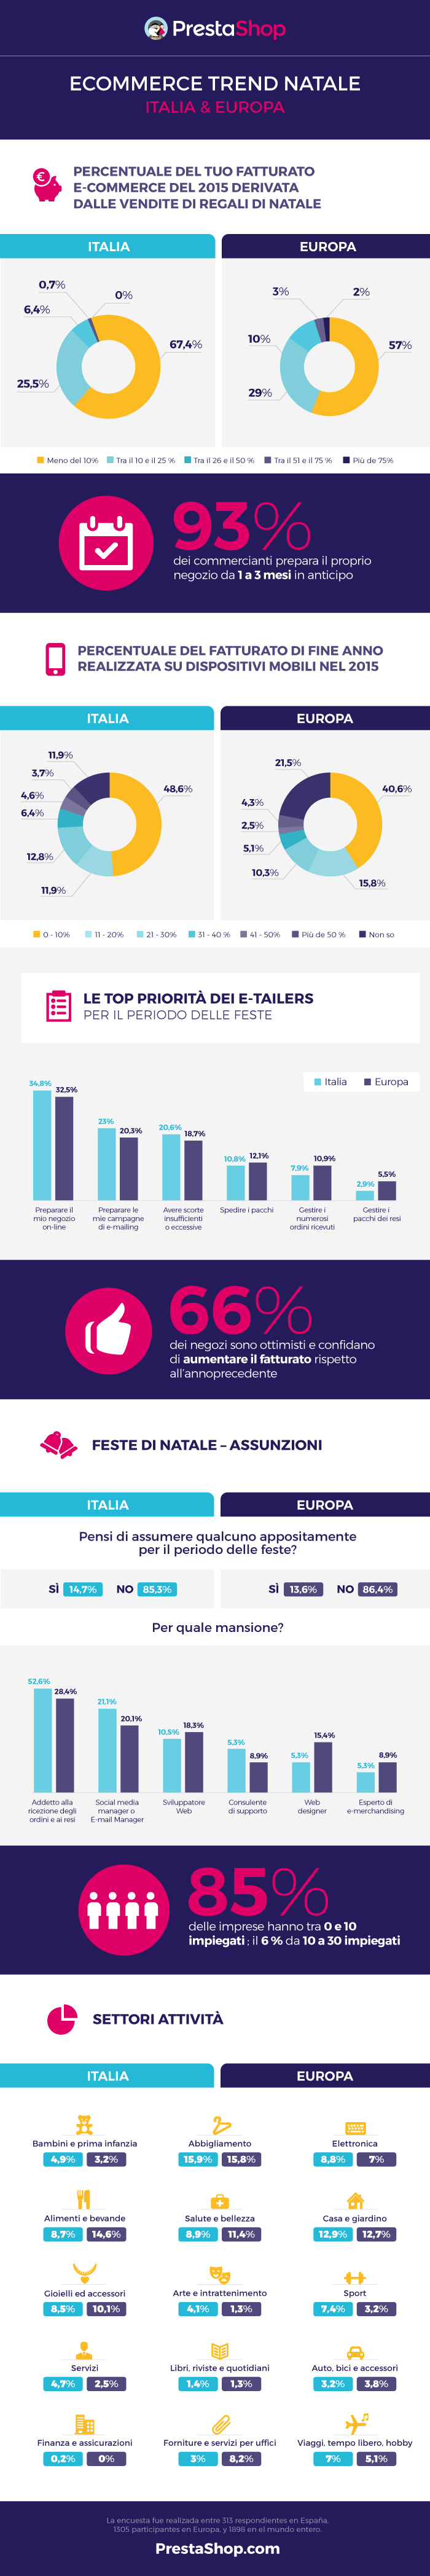 infographie_IT